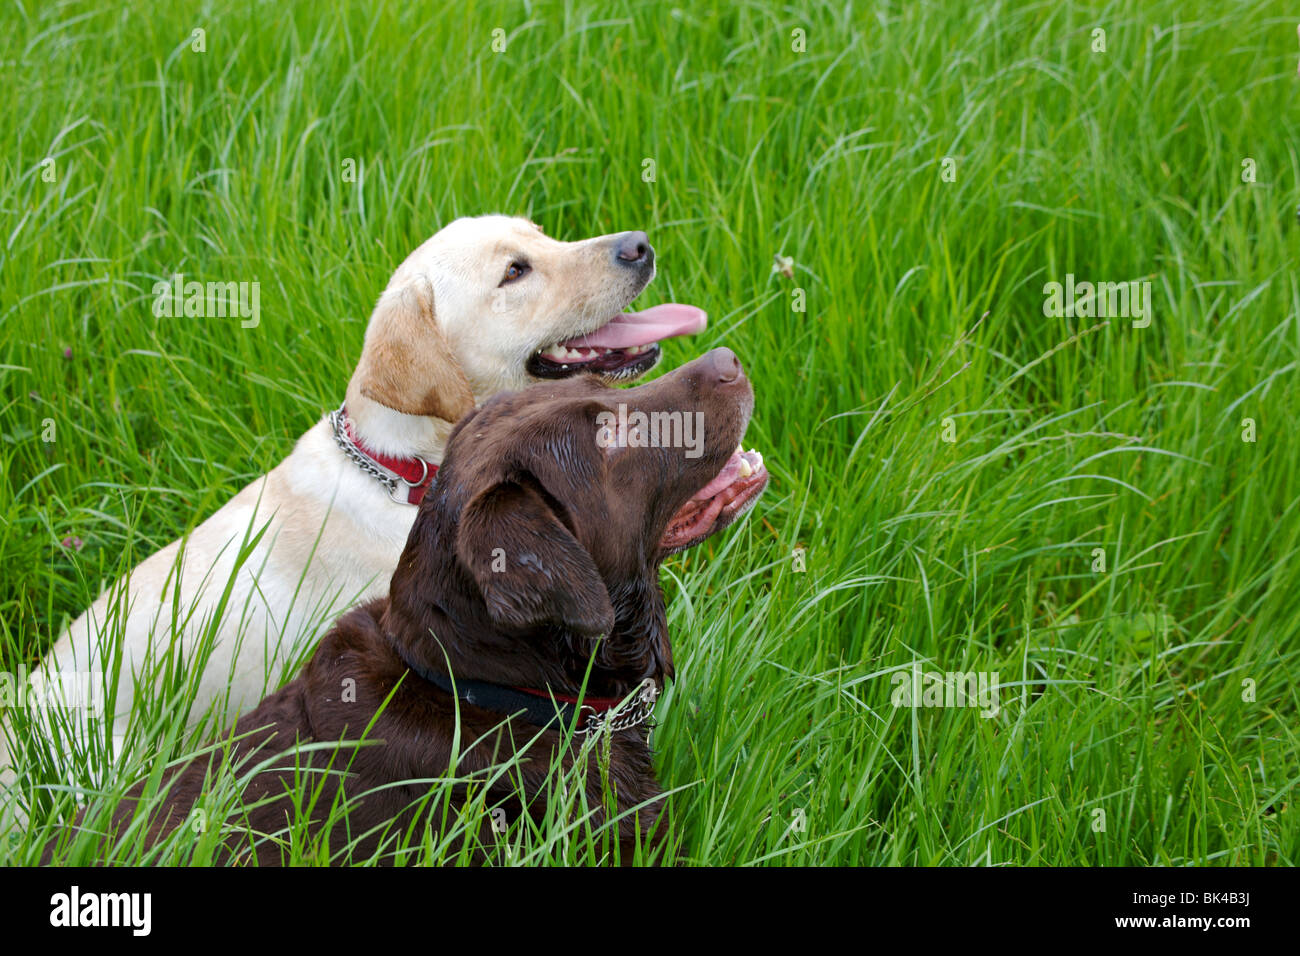 labrador dogs looking expectantly at owner for reward after exercising in field - Stock Image